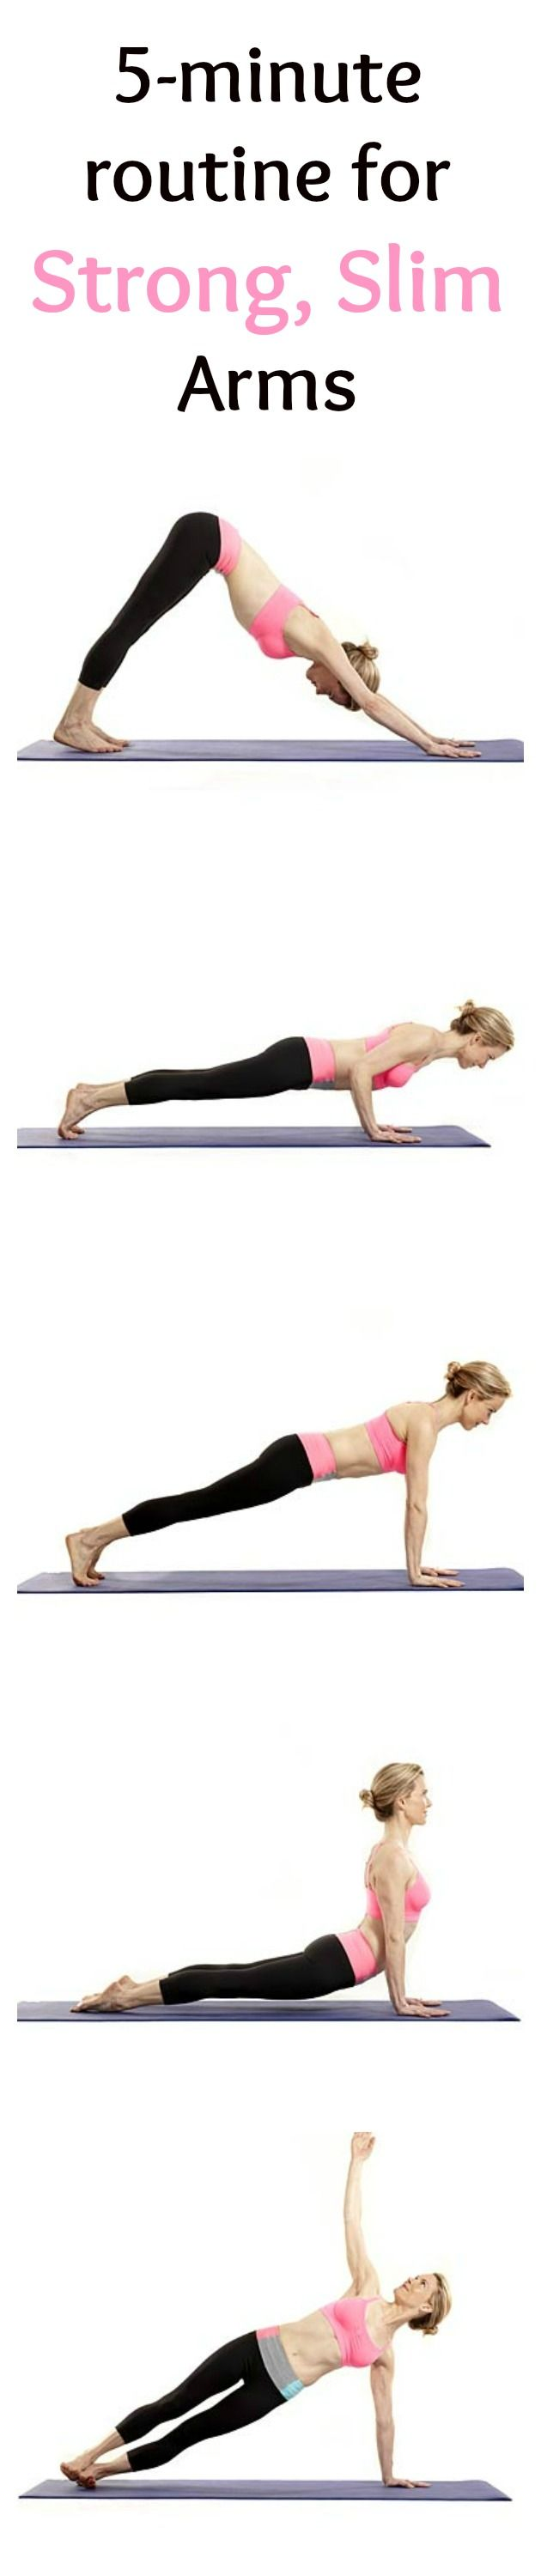 Tone arms with quick yoga workout.